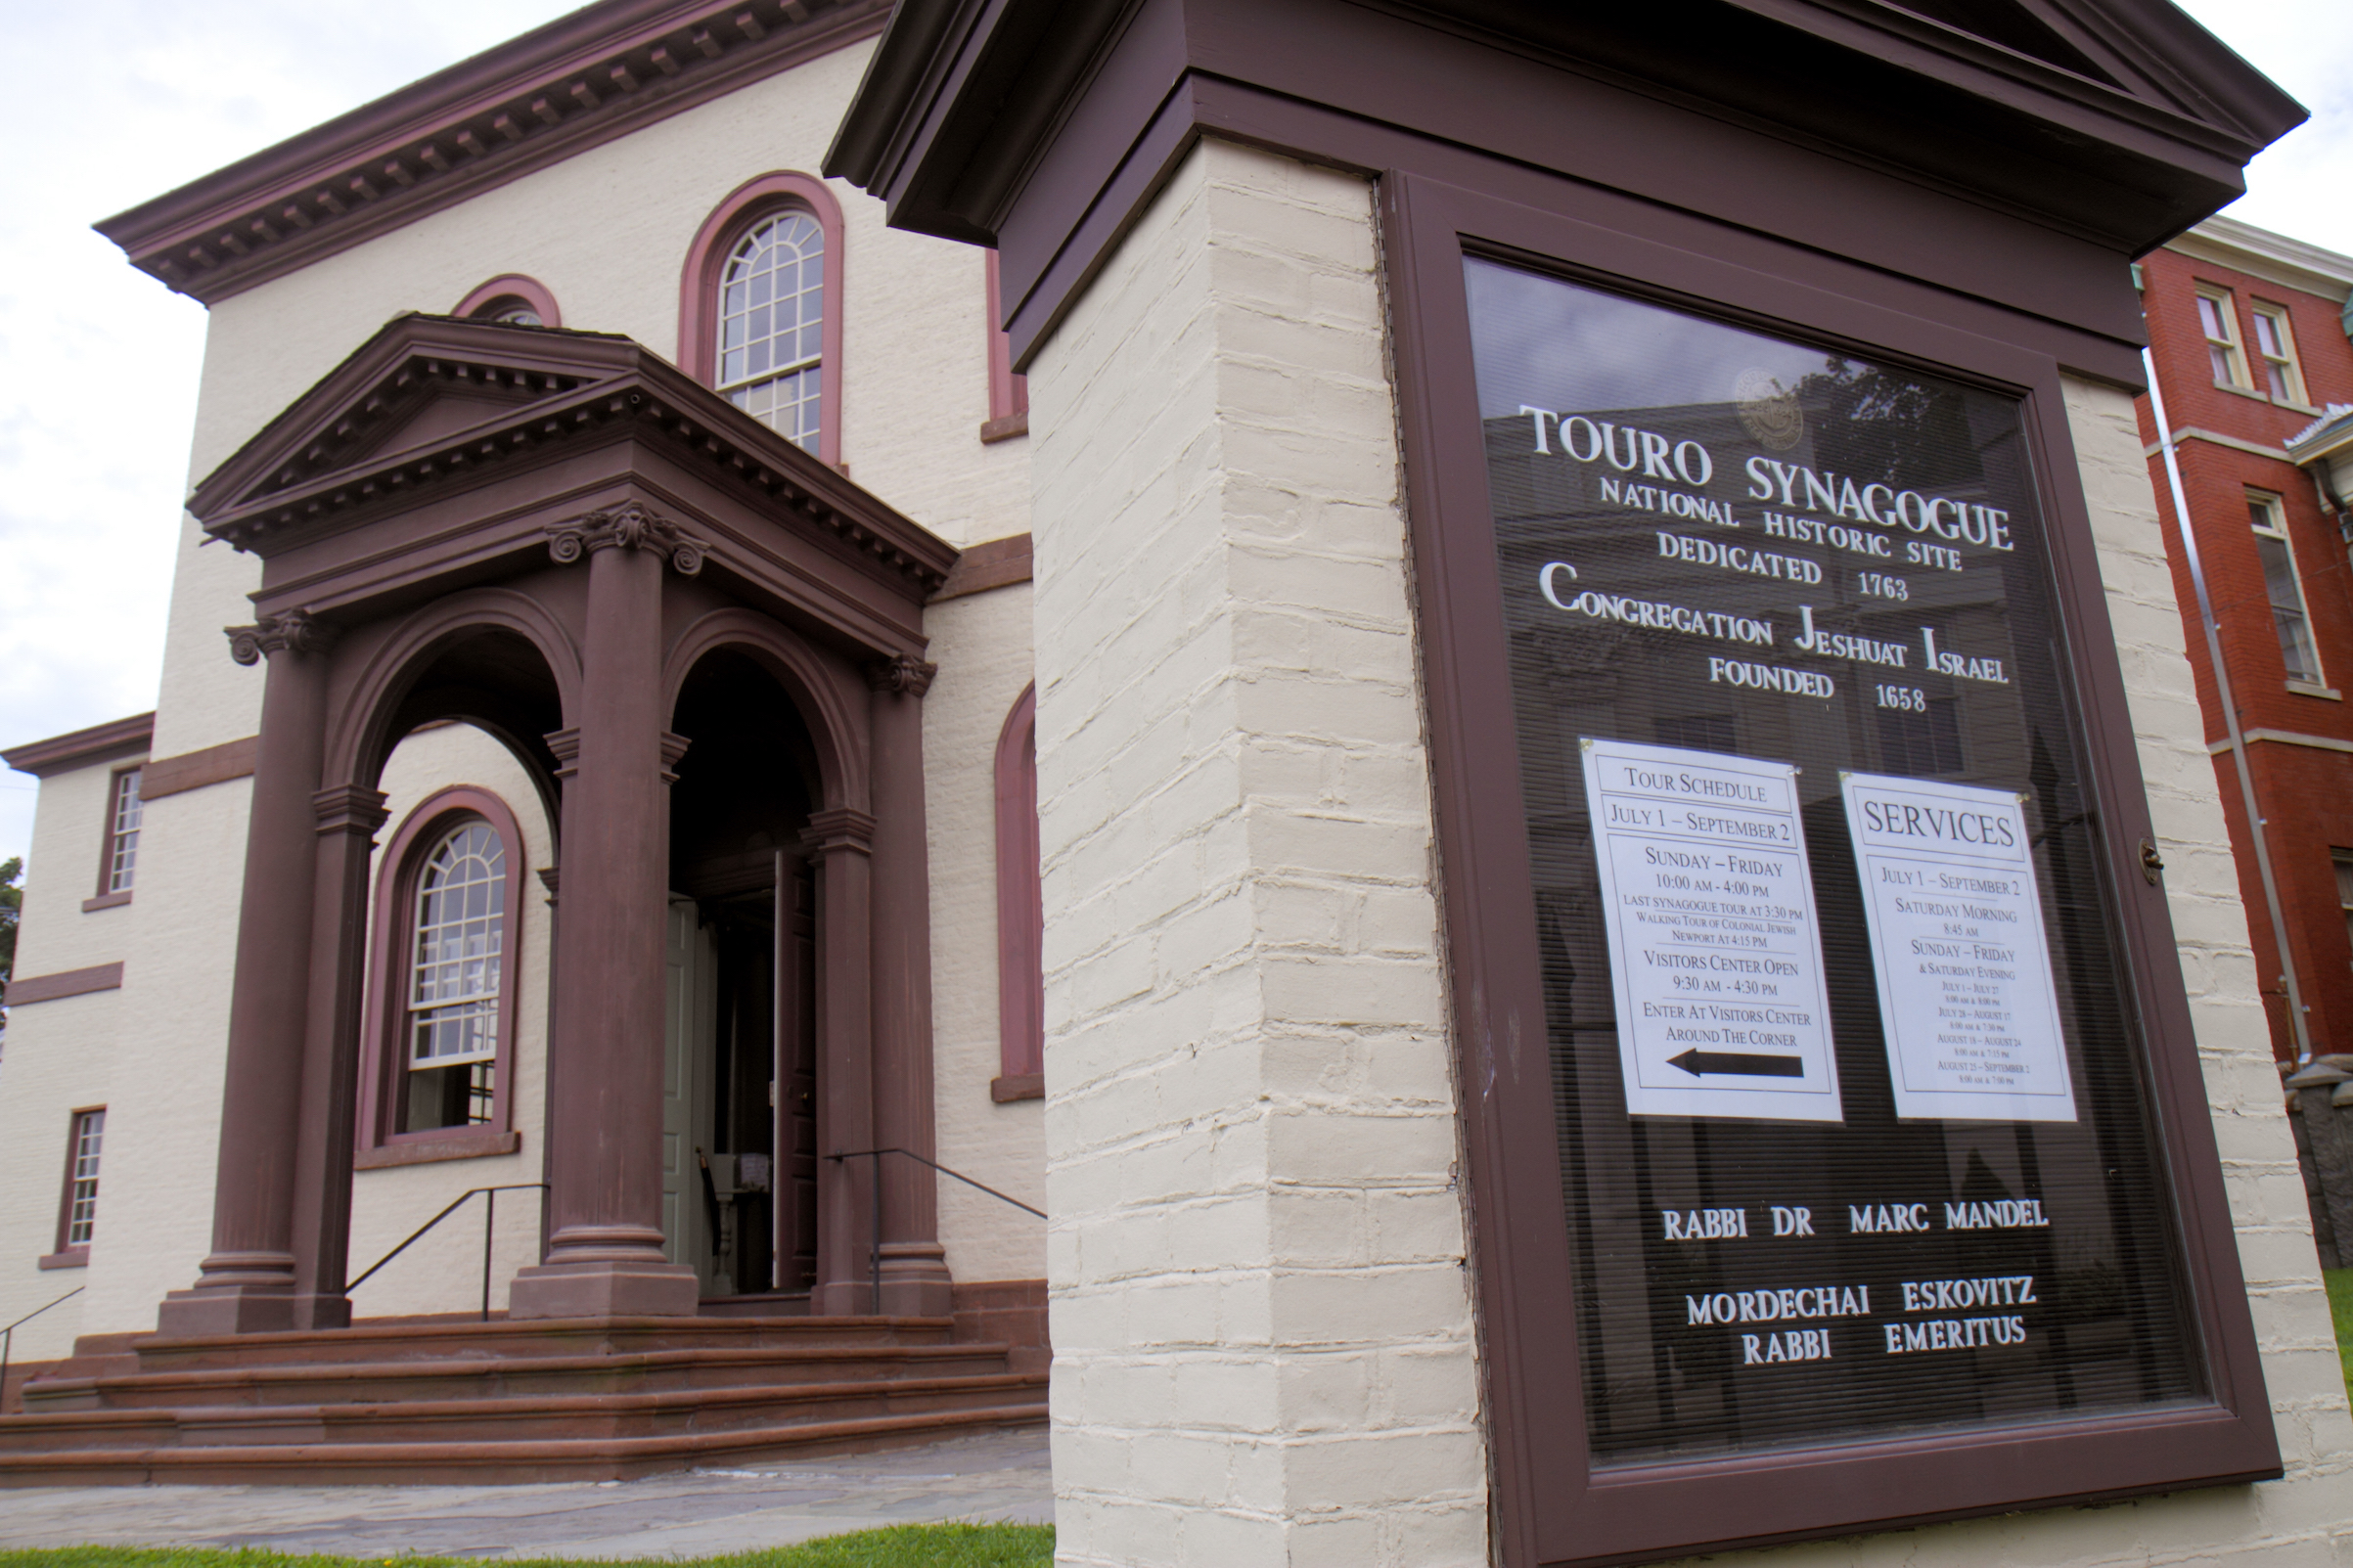 Touro Synagogue National Historic Site pictured in 2015. The synagogue, the oldest one standing in the U.S., was dedicated in 1763.